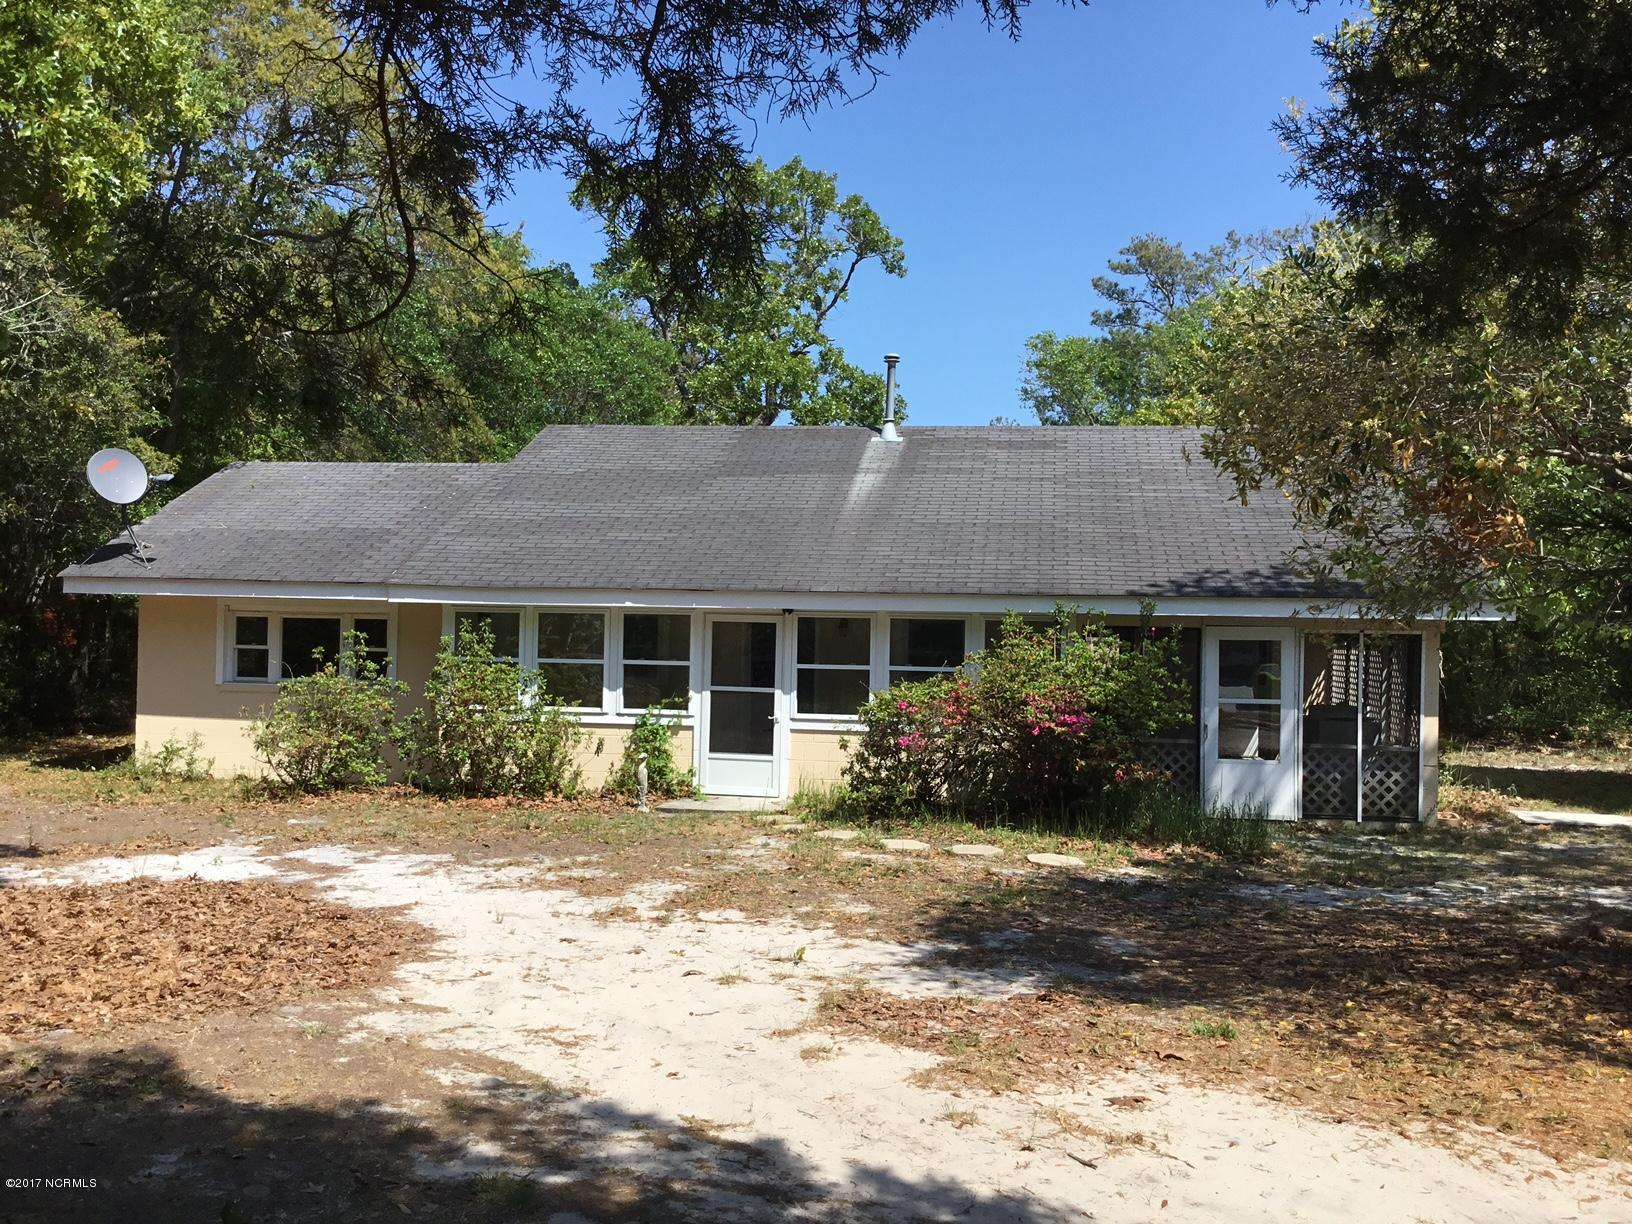 110 NE 25TH Street Oak Island, NC 28465